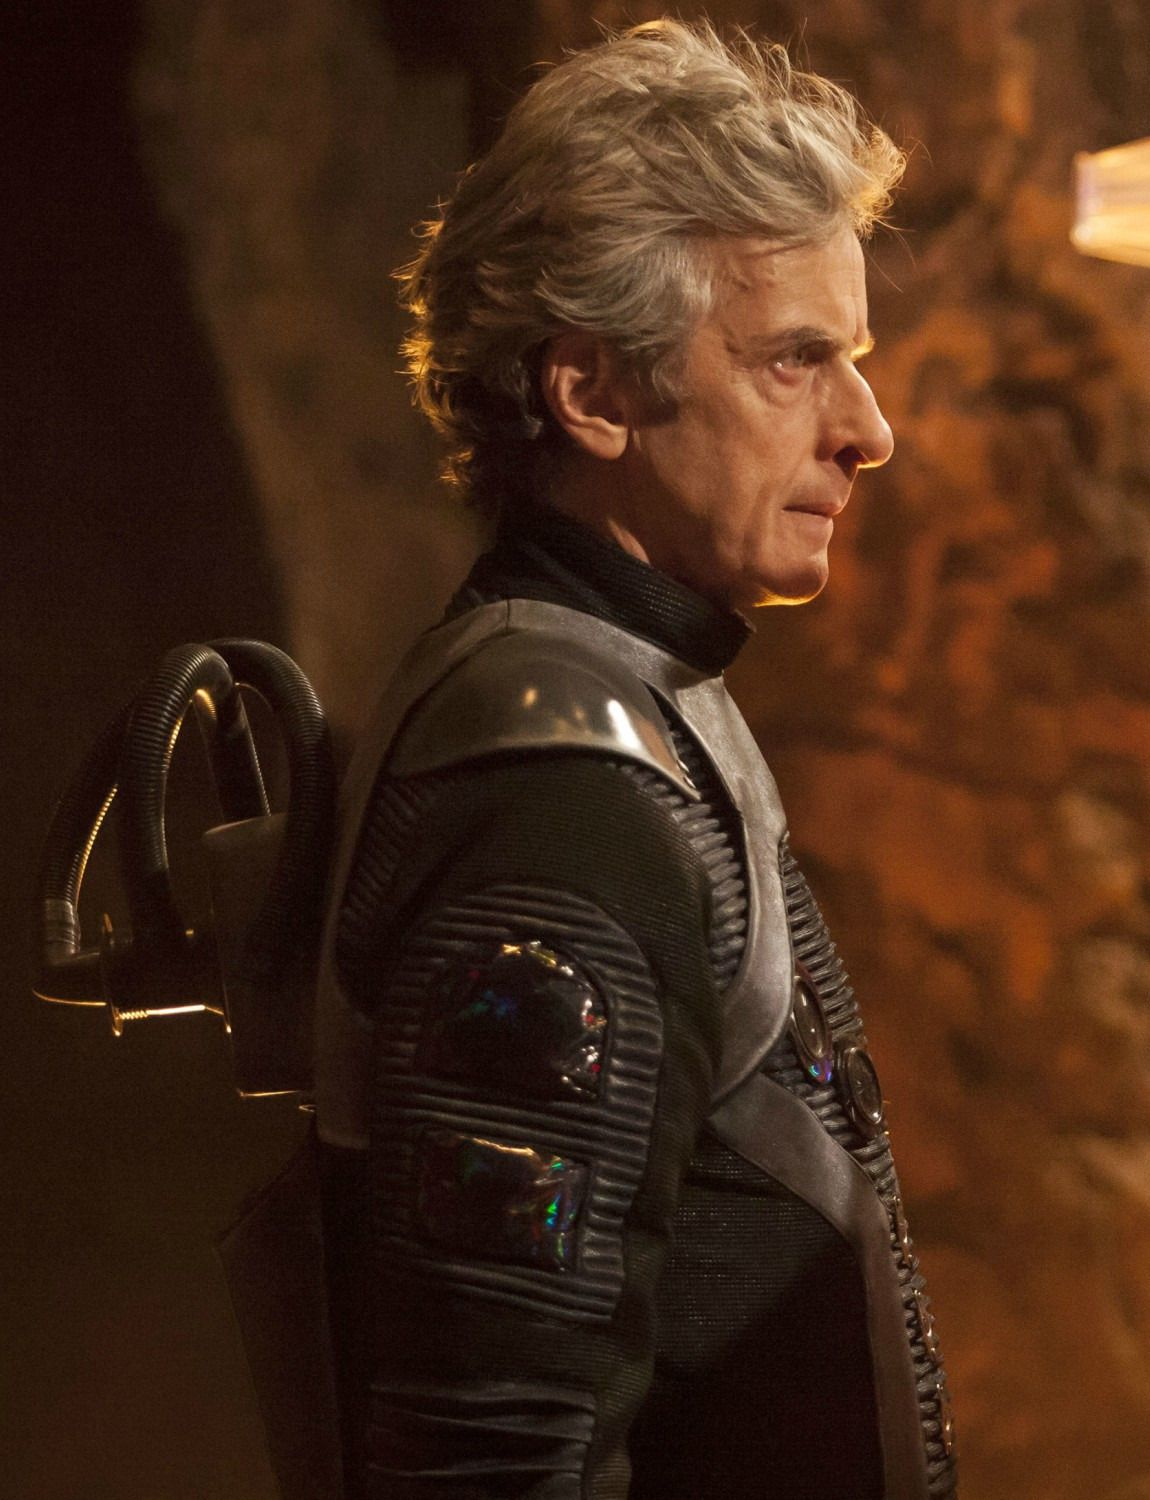 watch doctor who s10e05